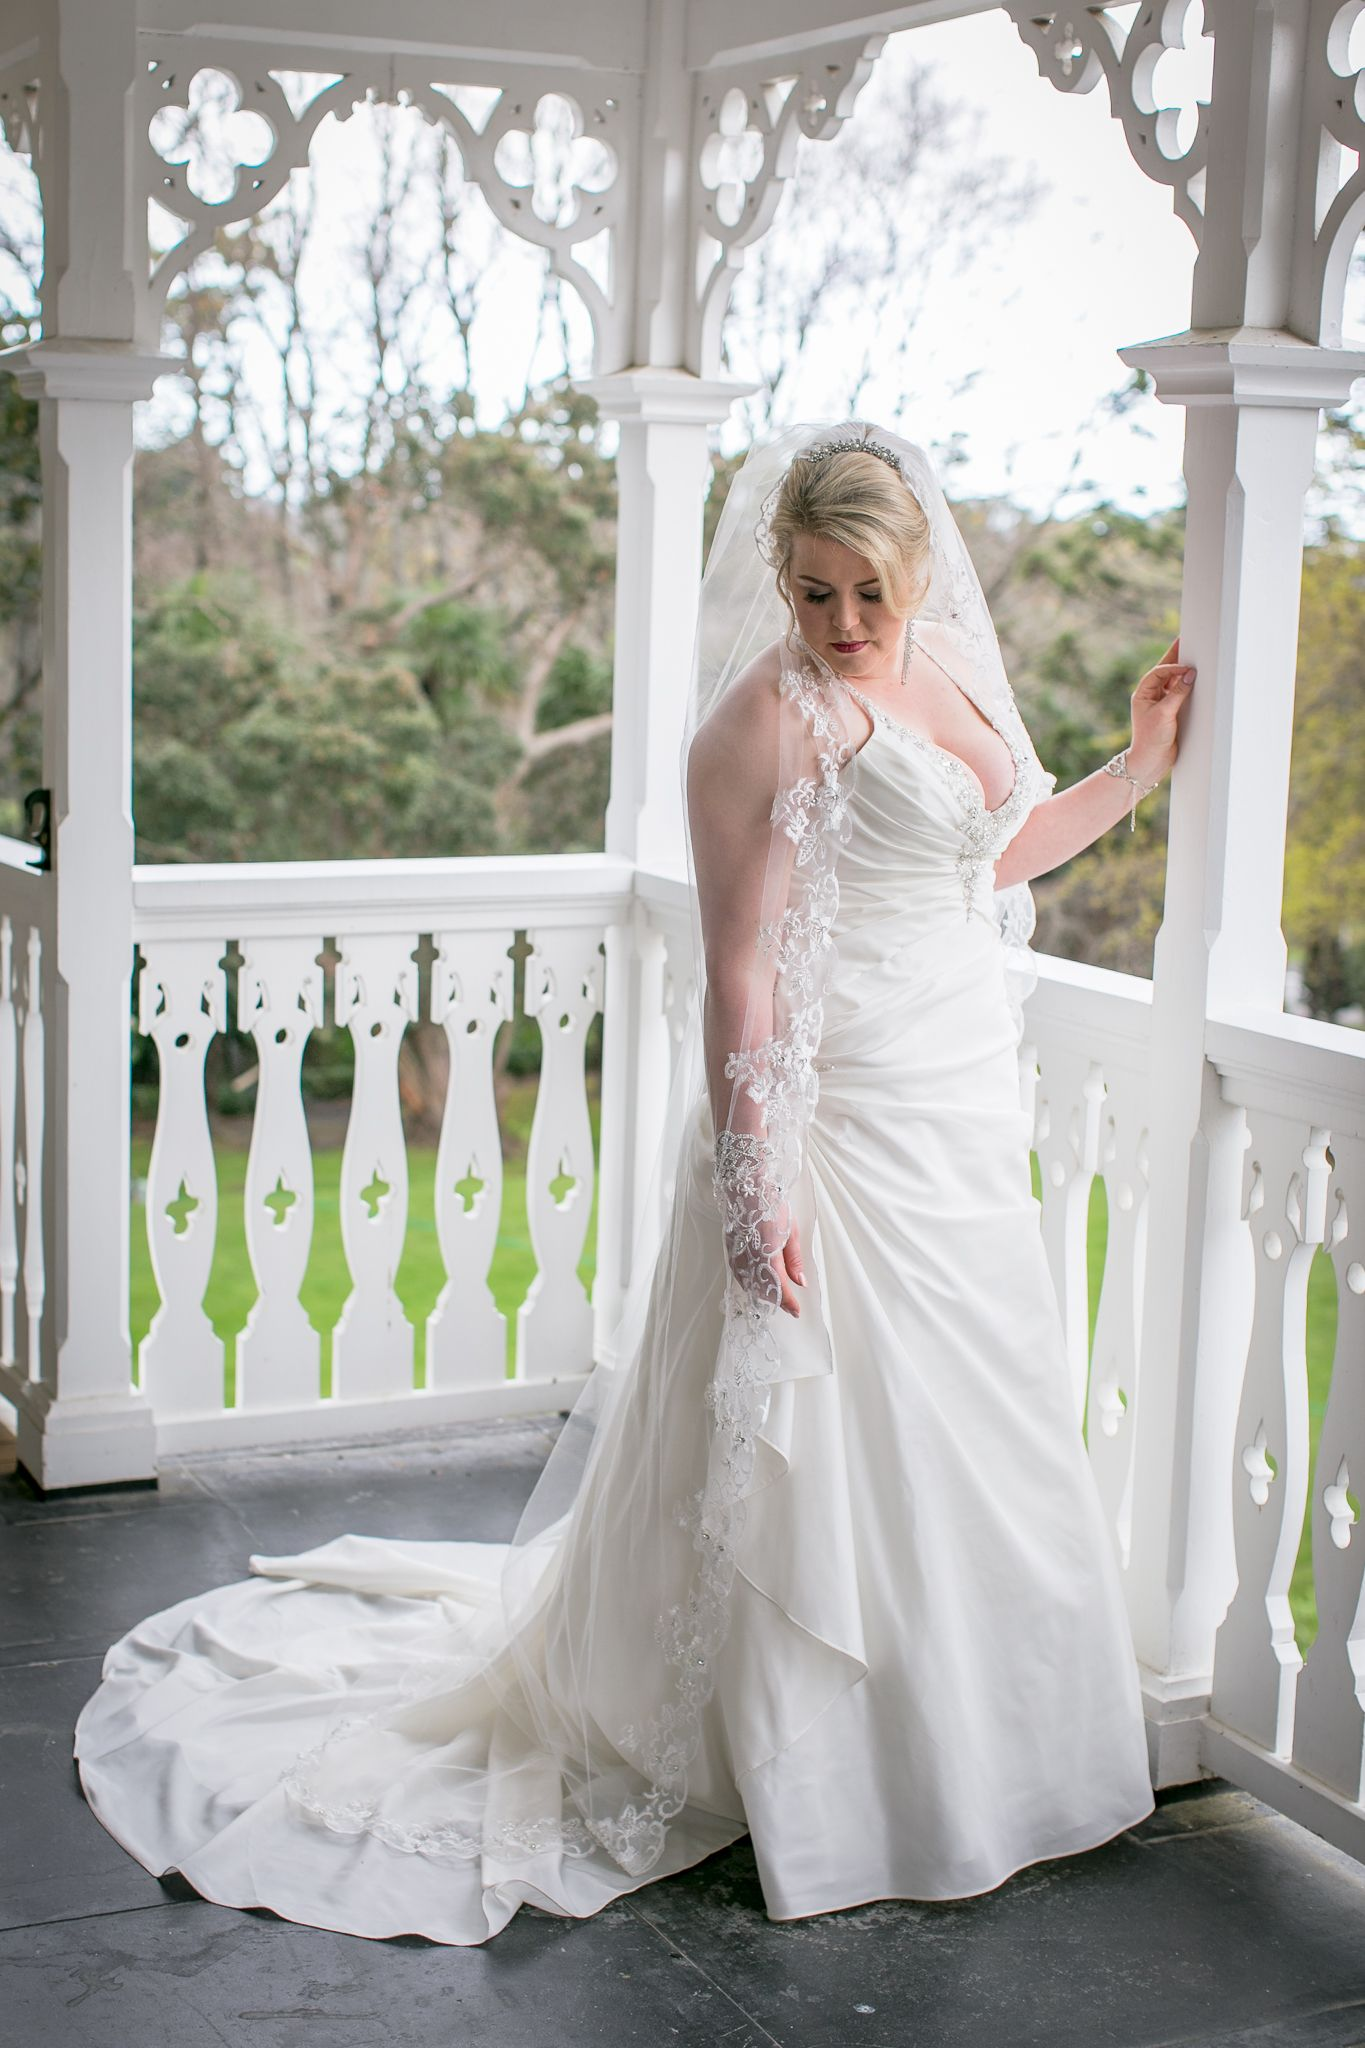 My beautiful alfred angelo wedding dress this dress made me look